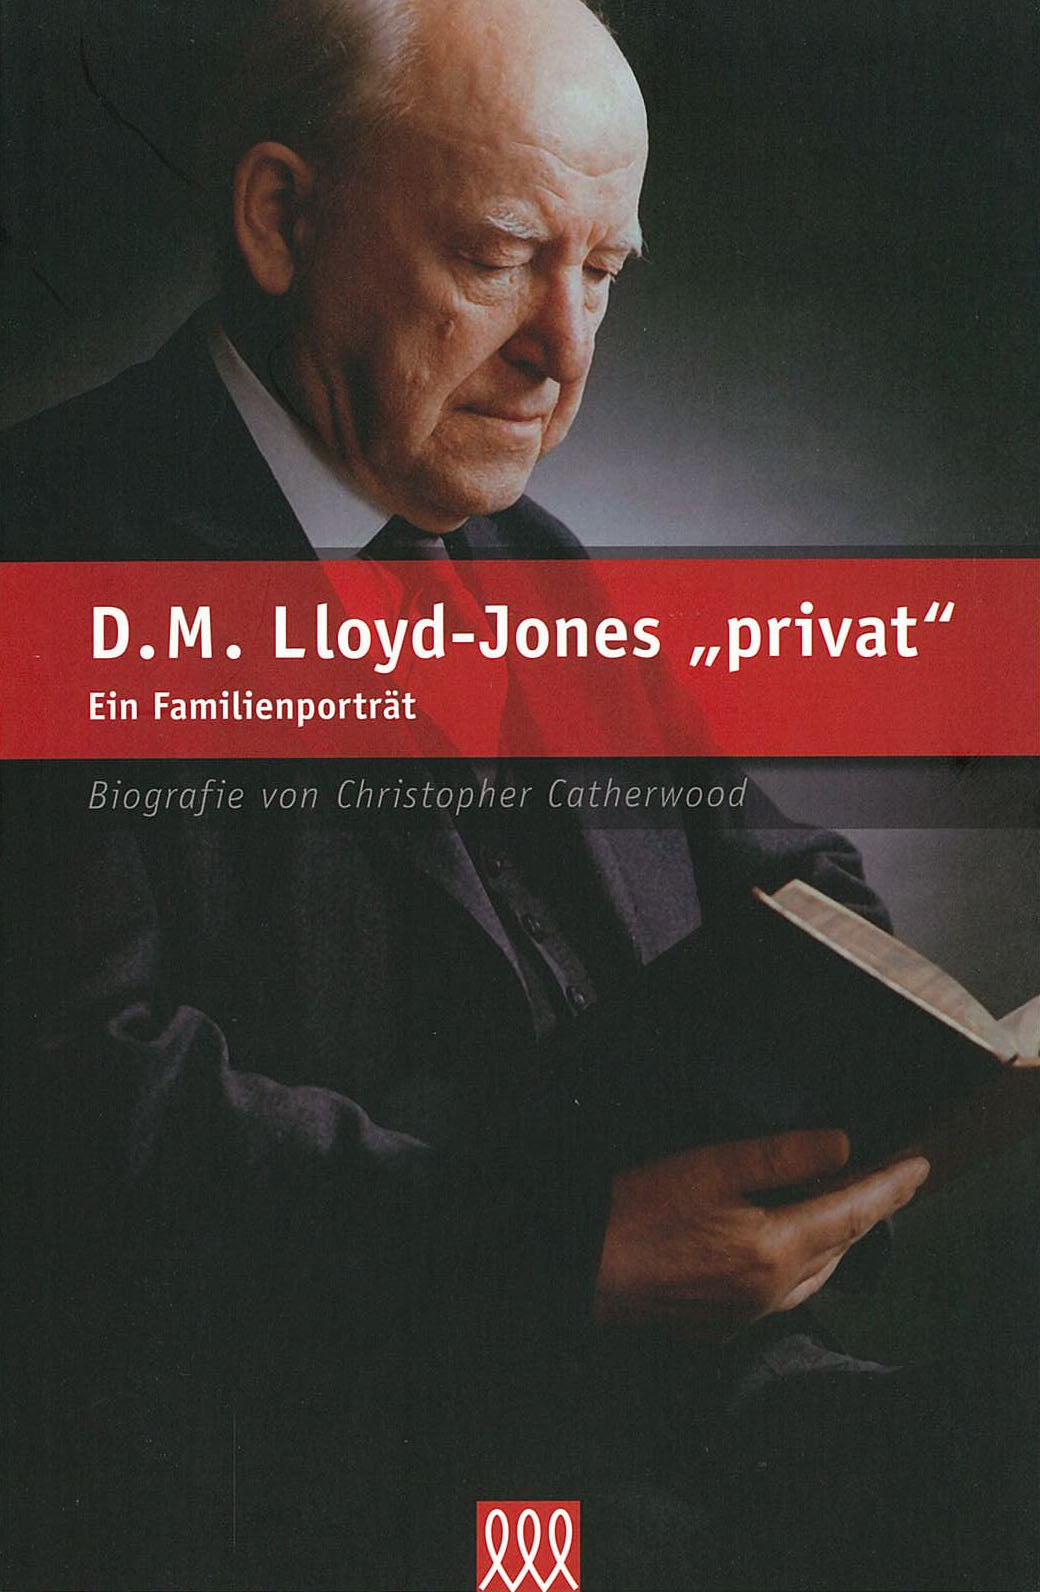 D.M. Lloyd-Jones privat